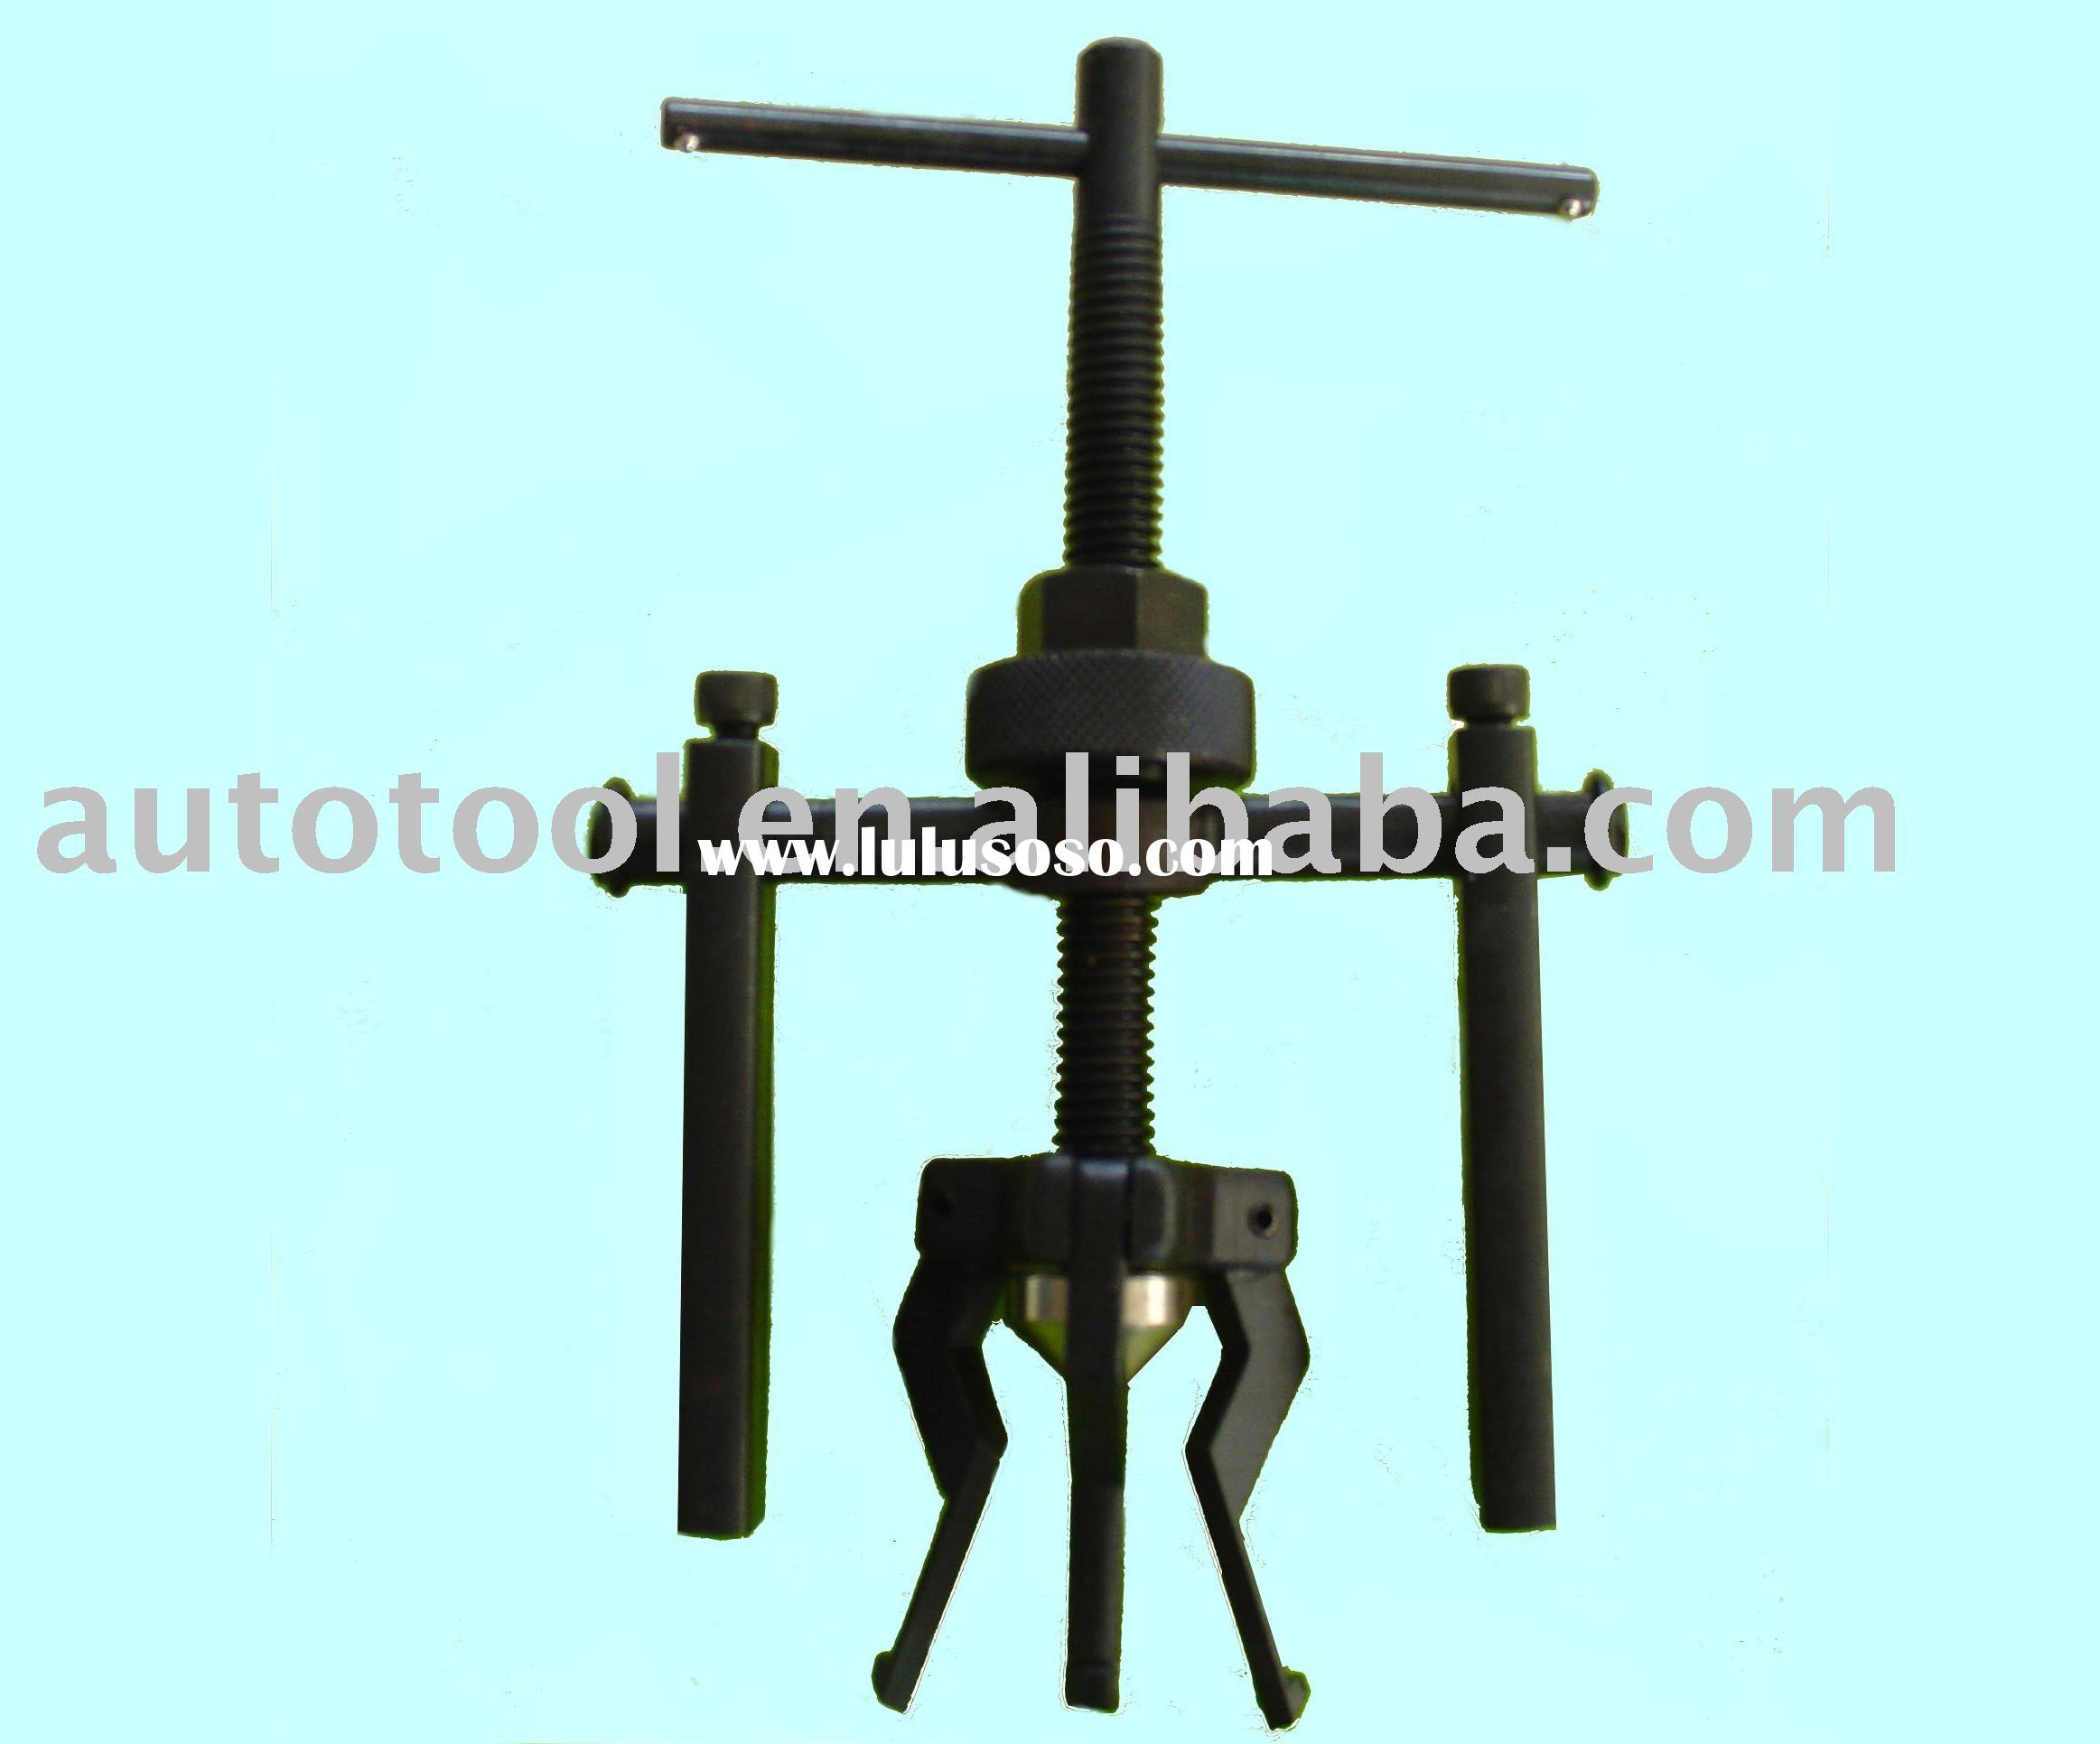 Gear Puller Auto Zone : Jaw puller manufacturers in lulusoso